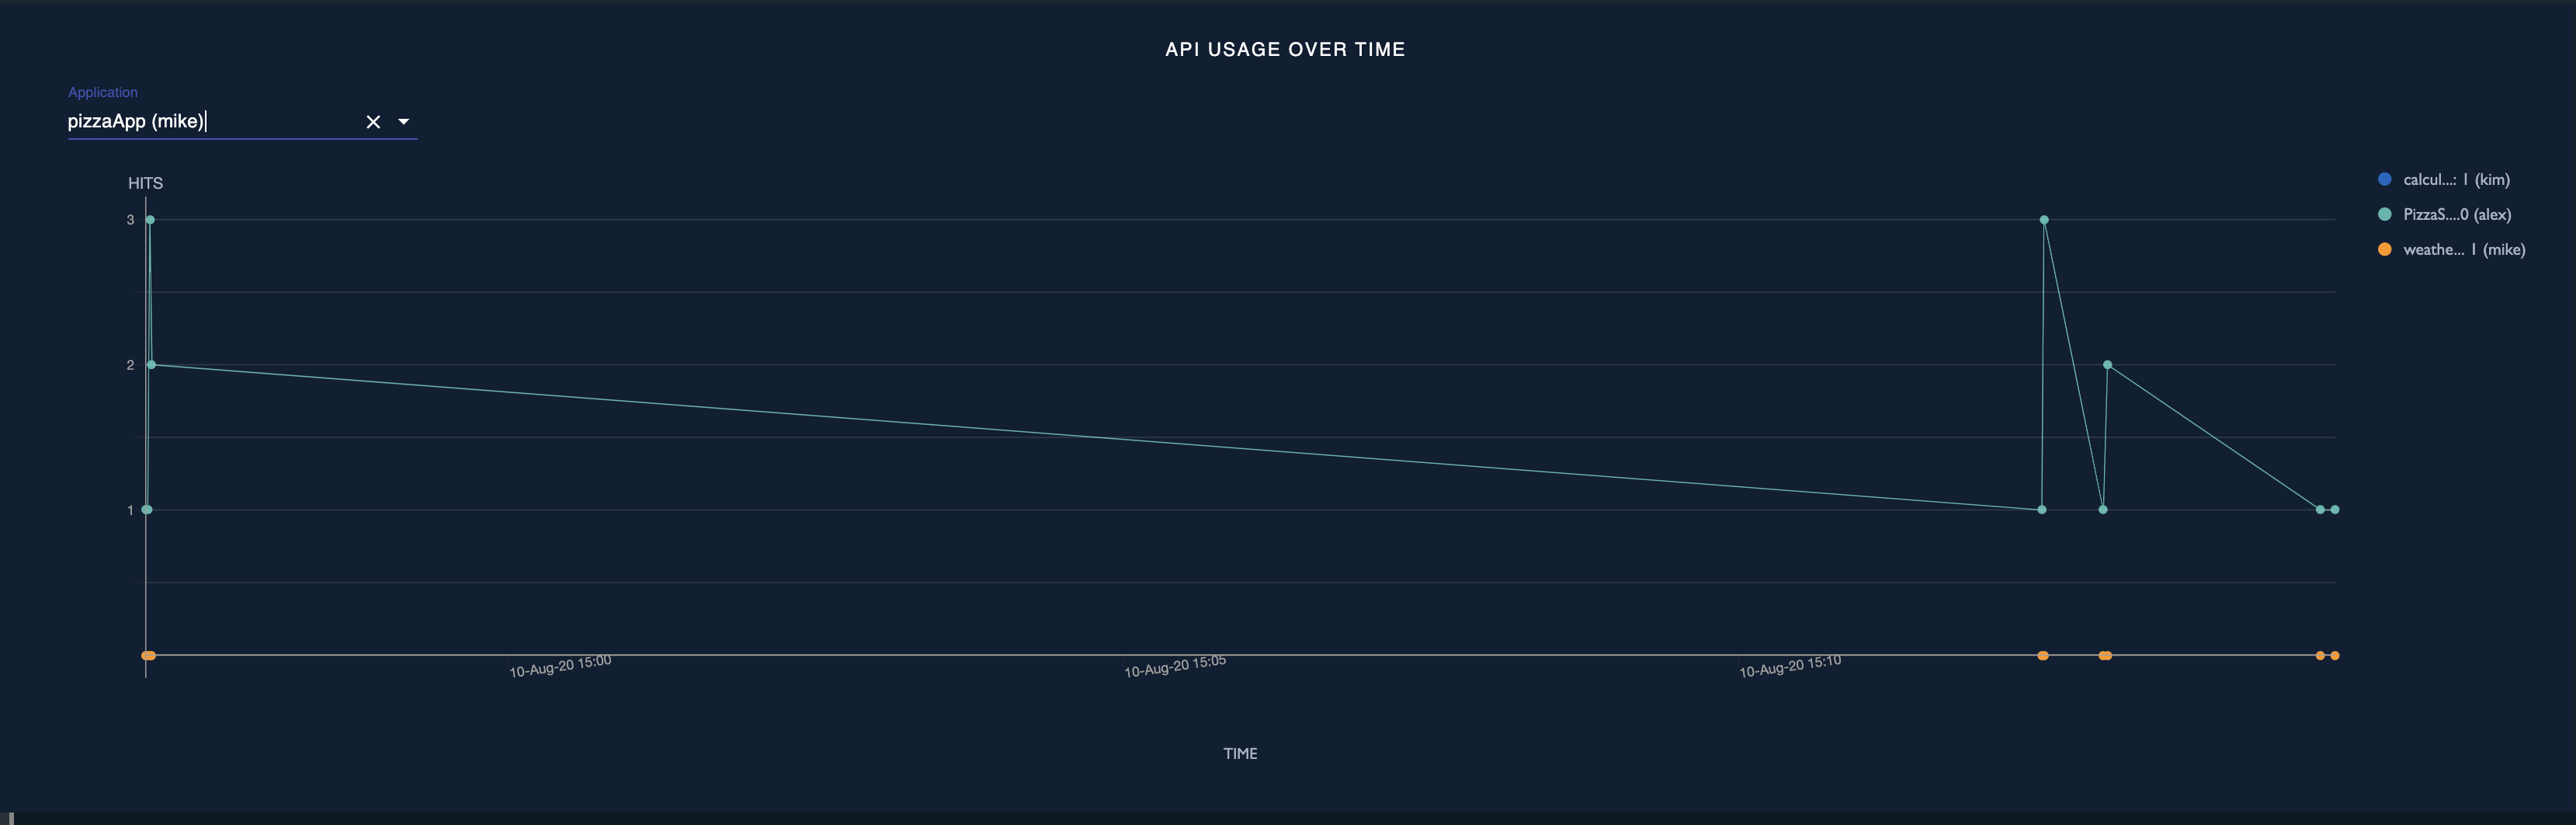 API usage overtime by app